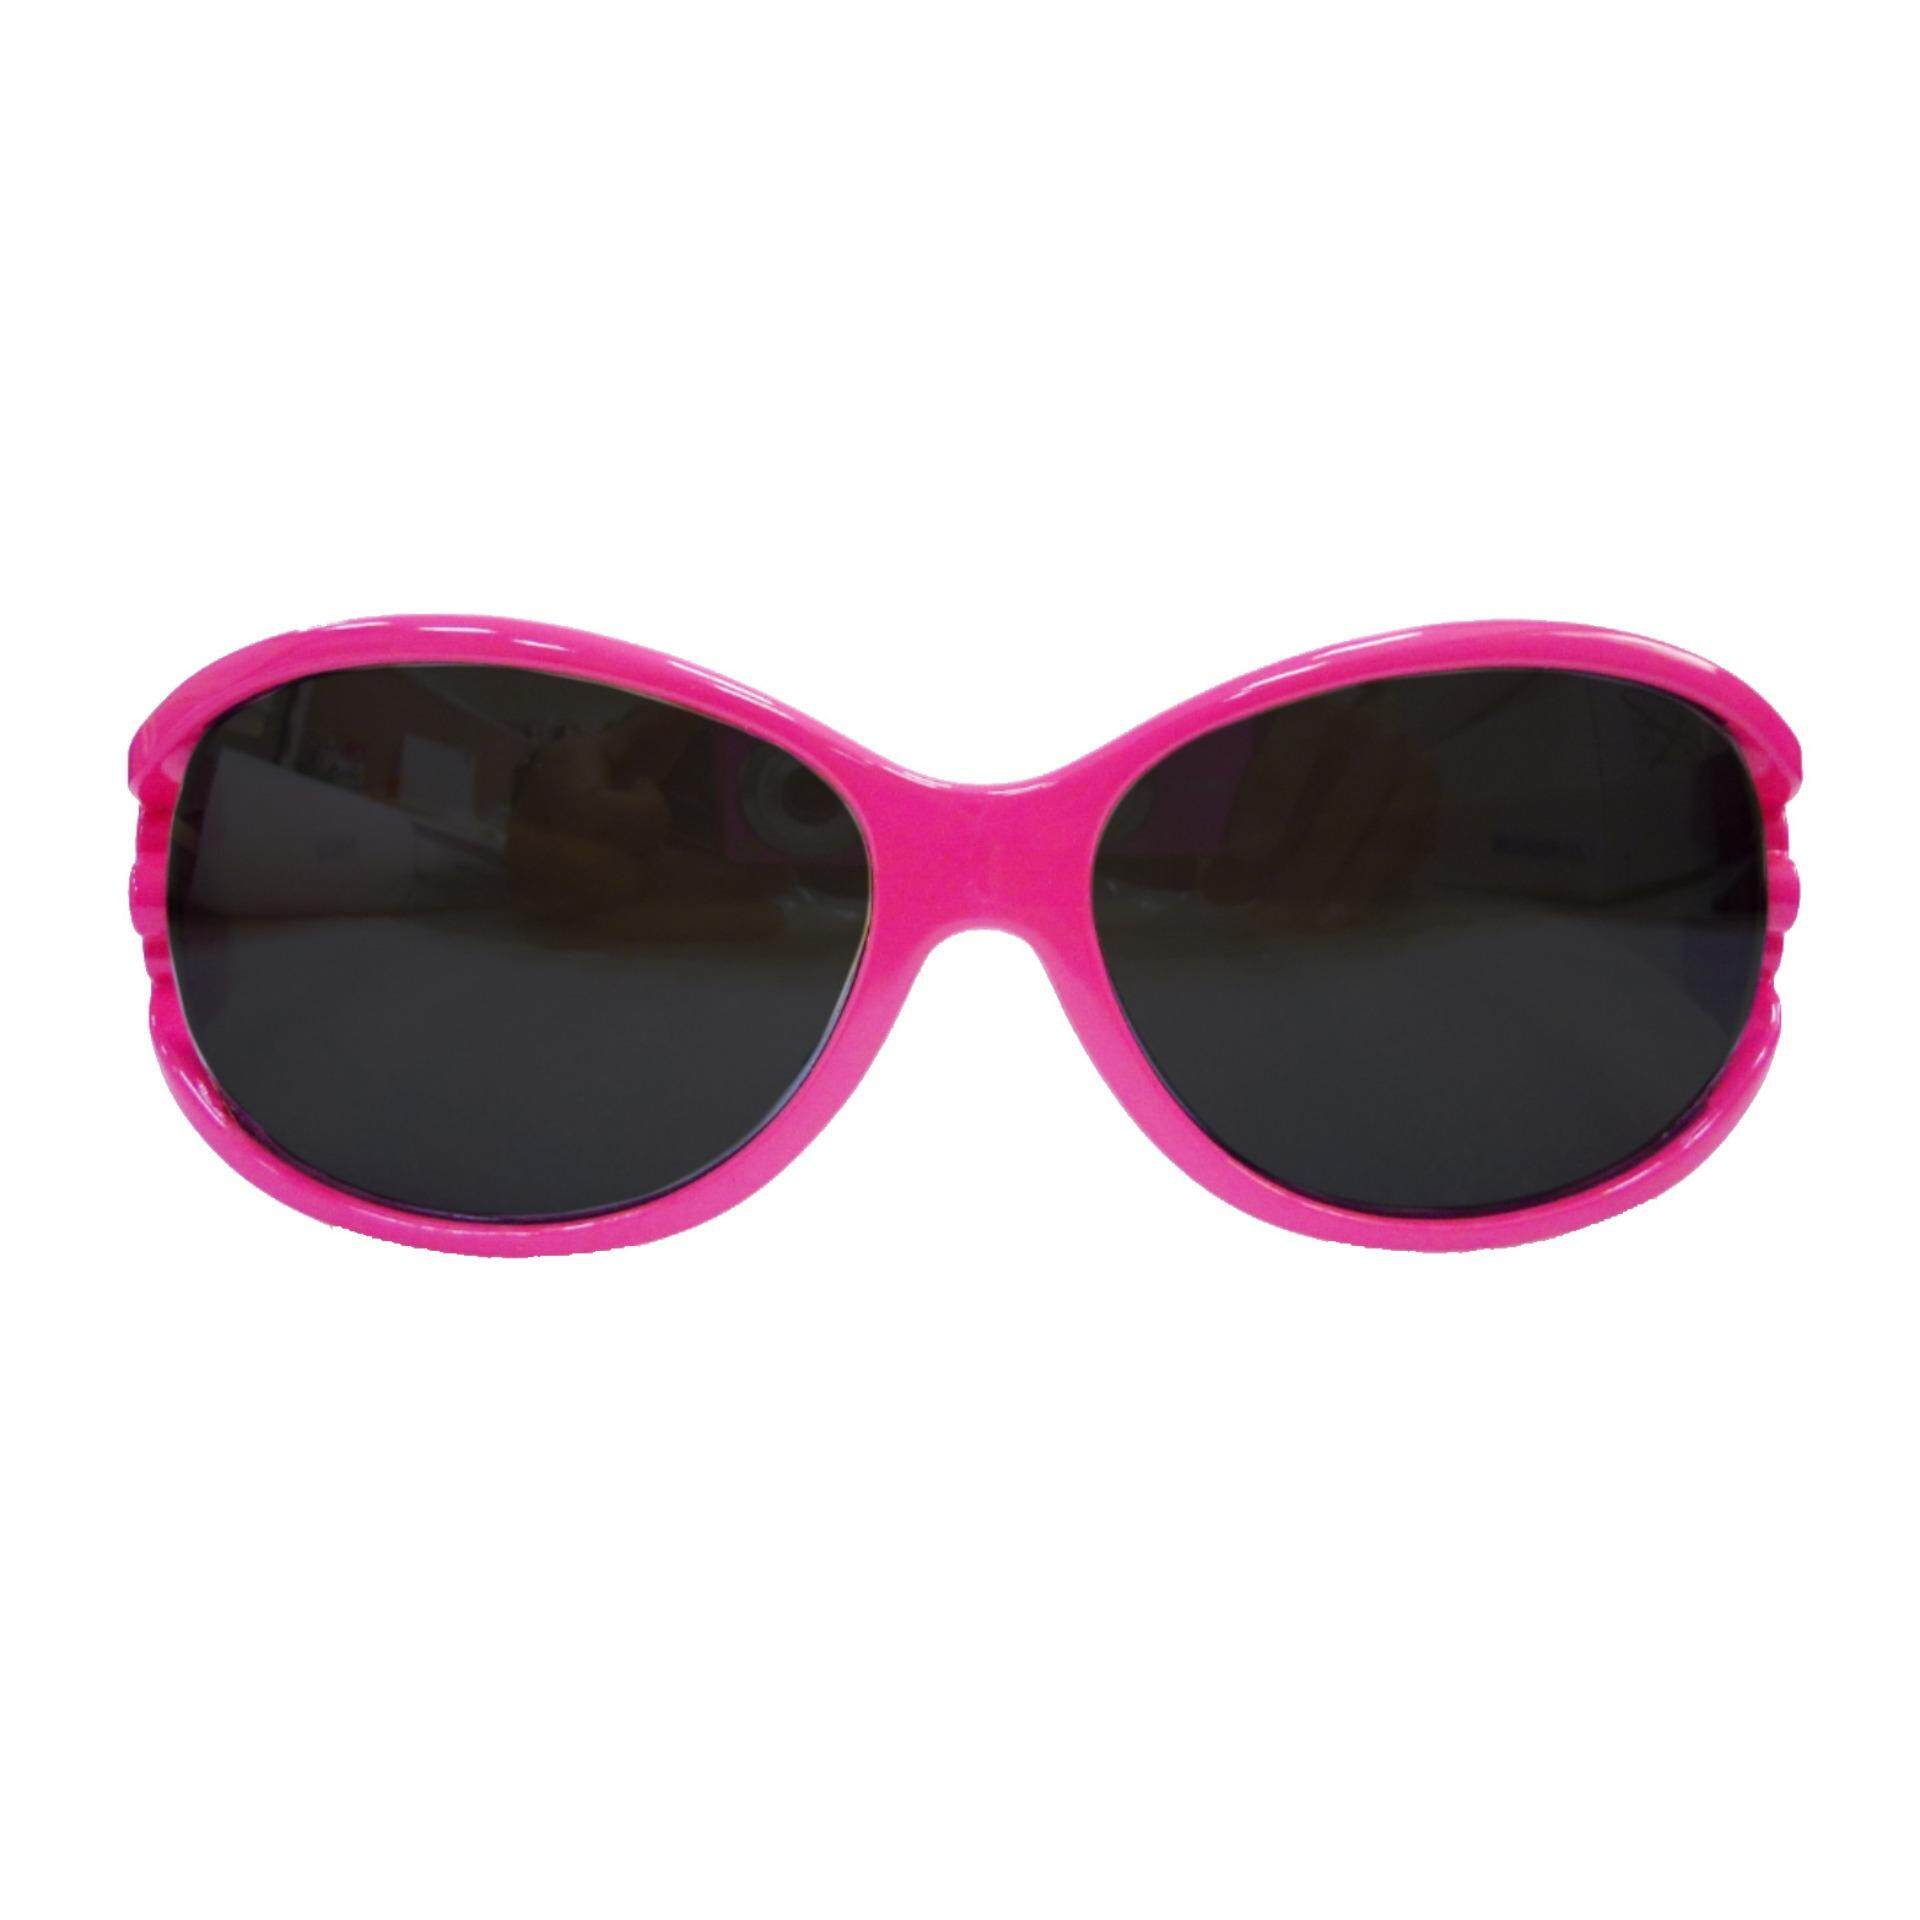 6b6ab12c6c0 Disney Minnie Girls Square Lens 100% UV Protection Eyewear Outdoor  Sunglasses - Pink Colour